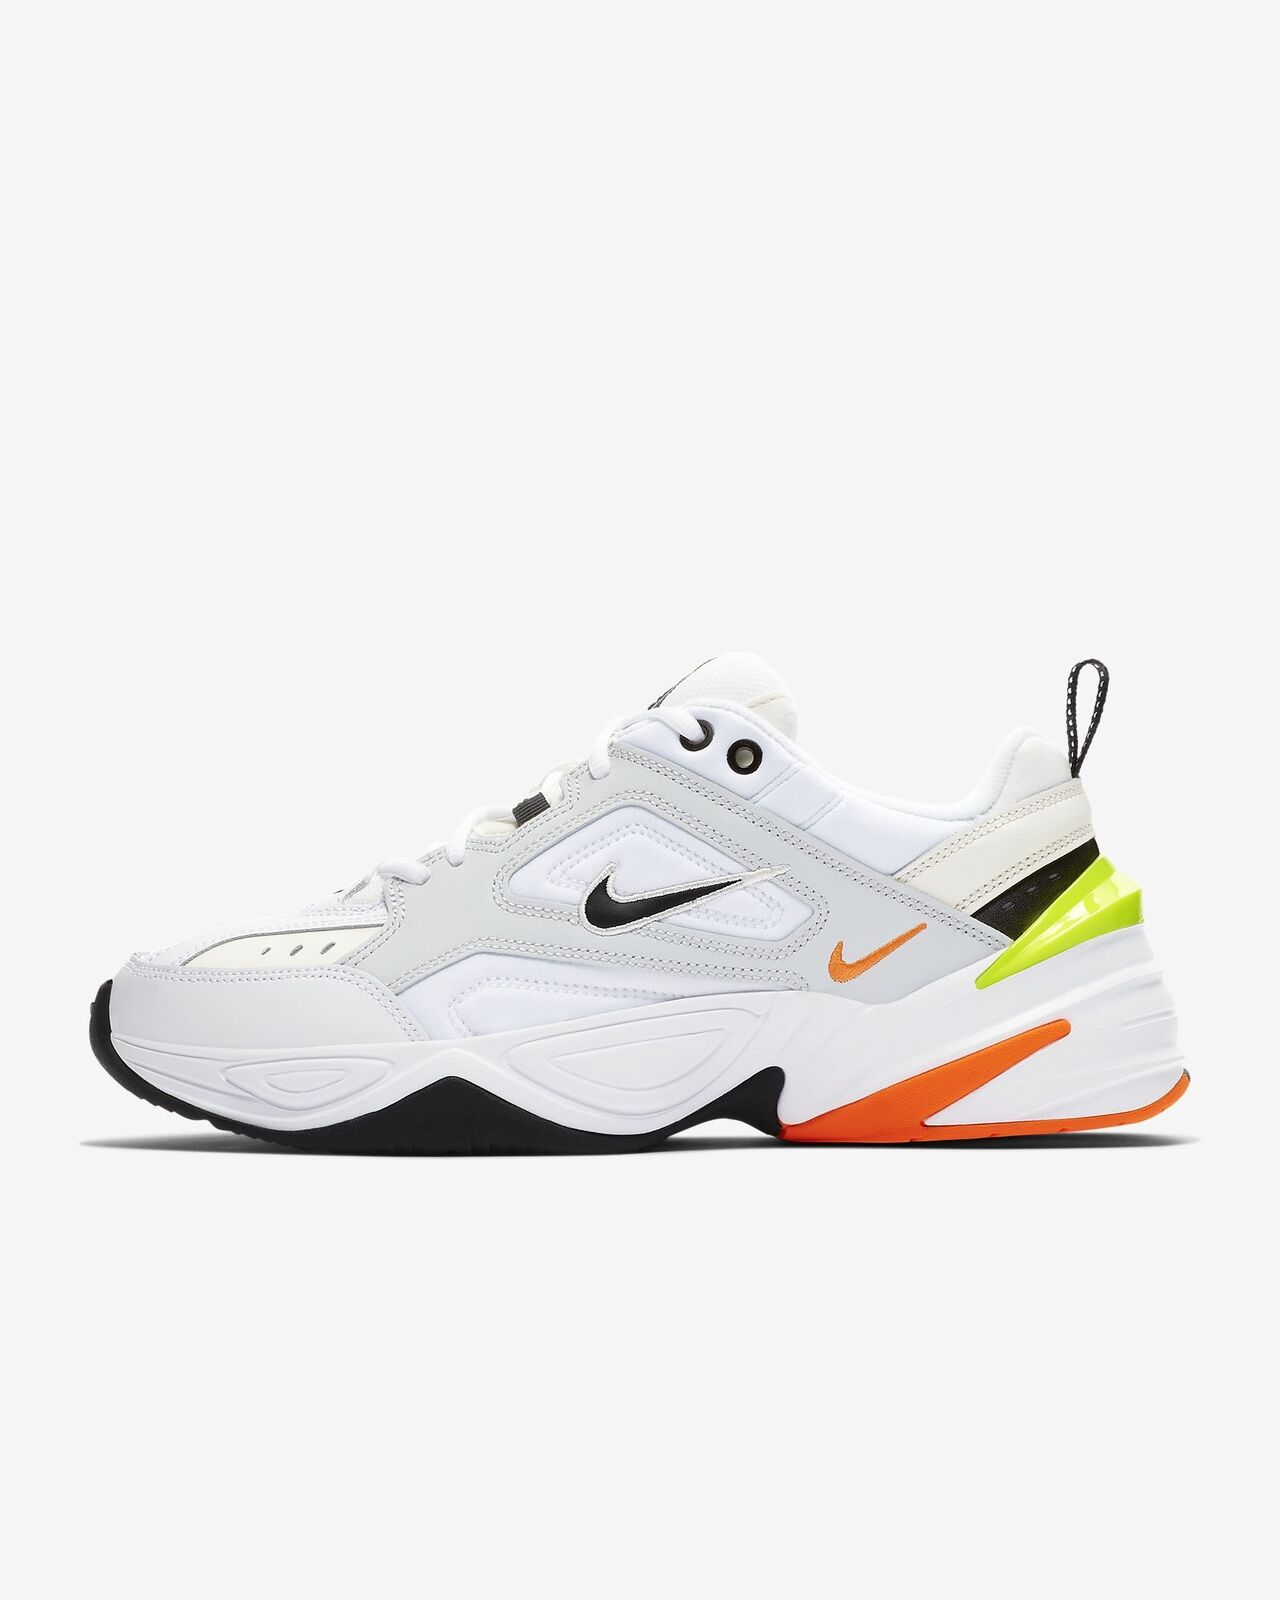 NIKE M2K TEKNO AV4789-004 PURE PLATINUM BLACK SAIL WHITE VOLT orange